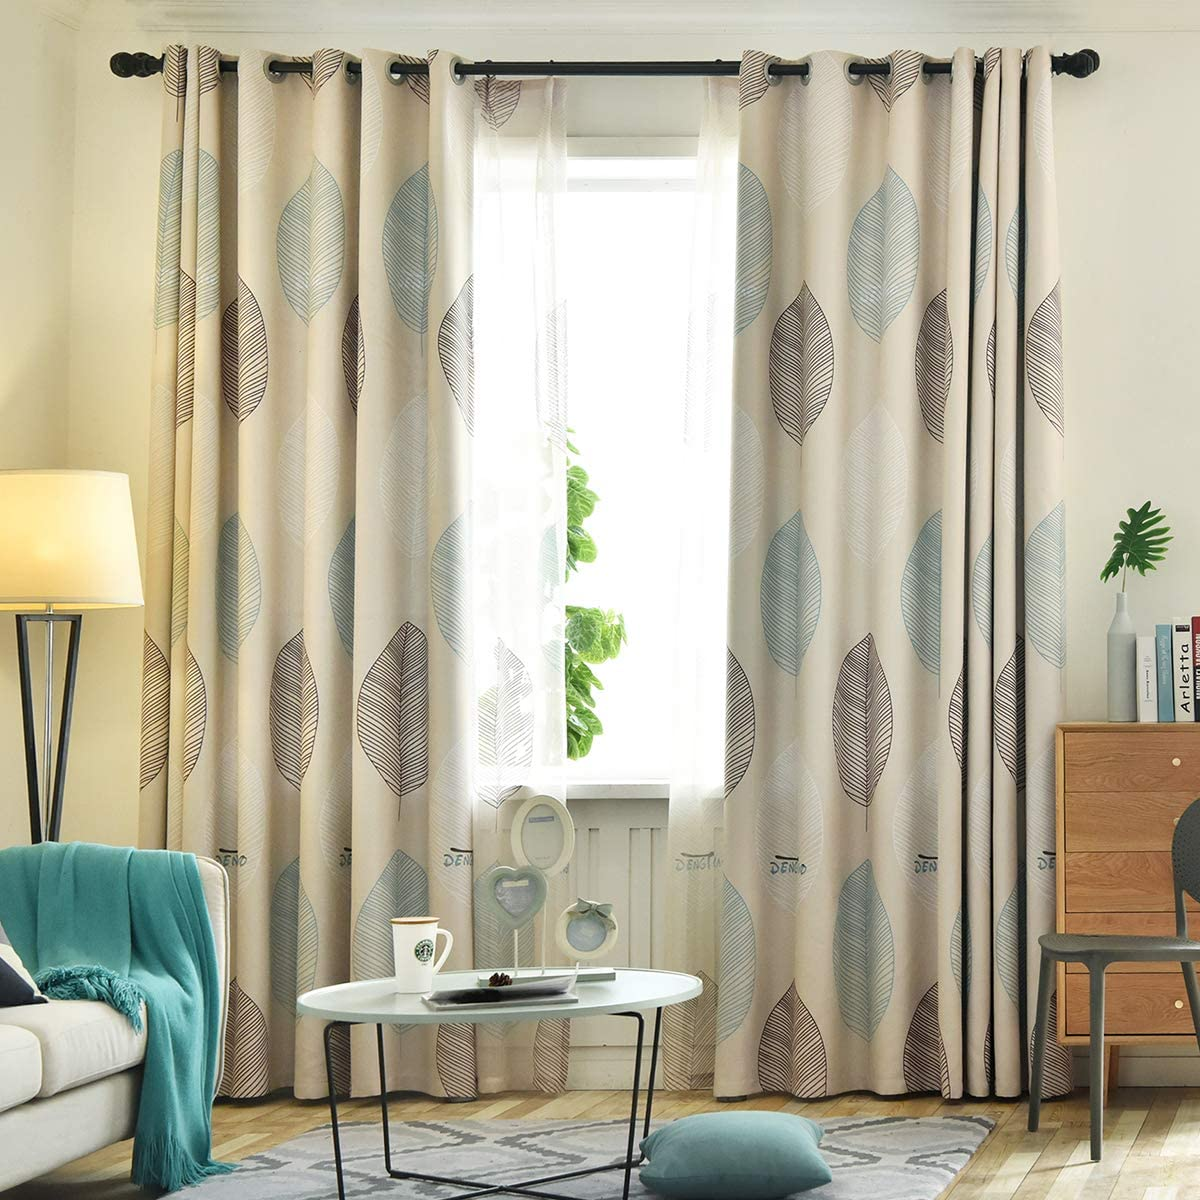 VOGOL Beige Window Curtains 96 Inches Long, Energy Efficient Leaf Curtain for Bedroom Living Room, 52X96, 2 Panels